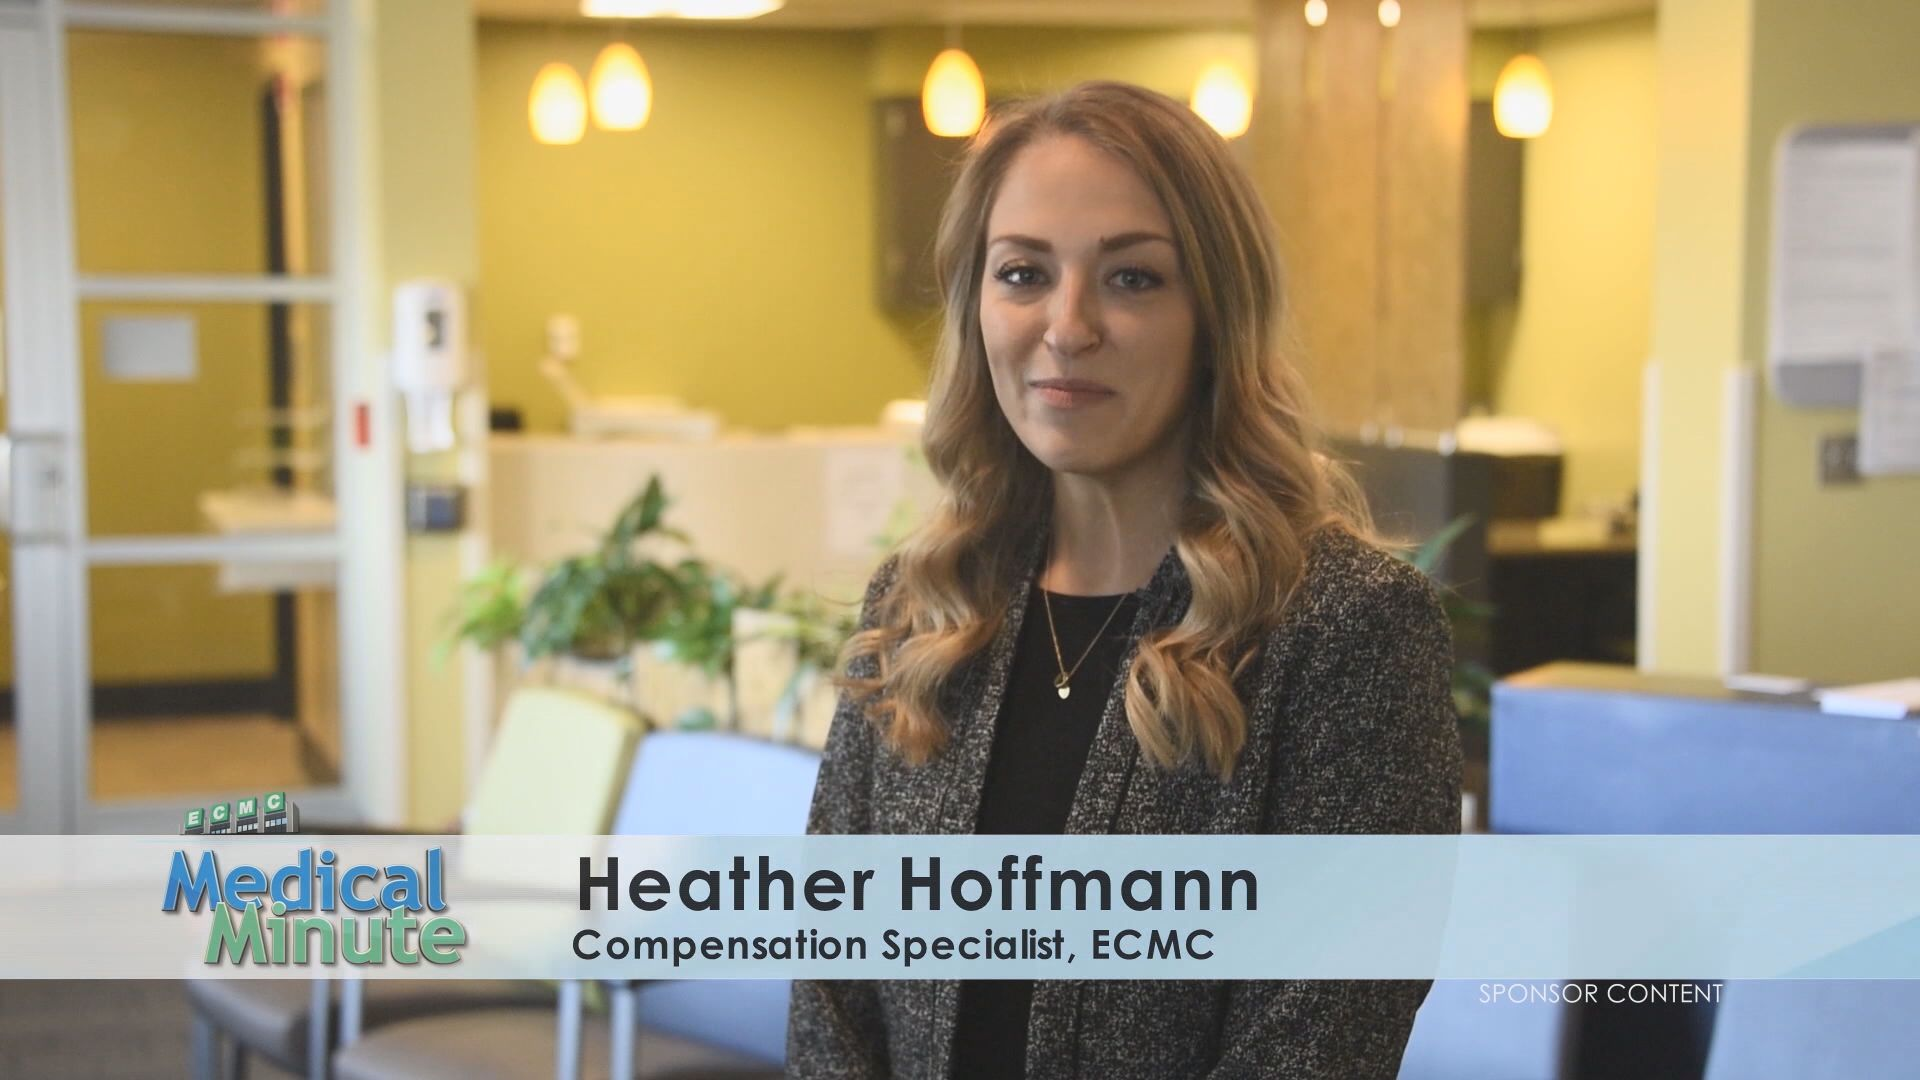 ECMCMedicalMinute HeatherHoffman TheConversationProject 041519 STILL